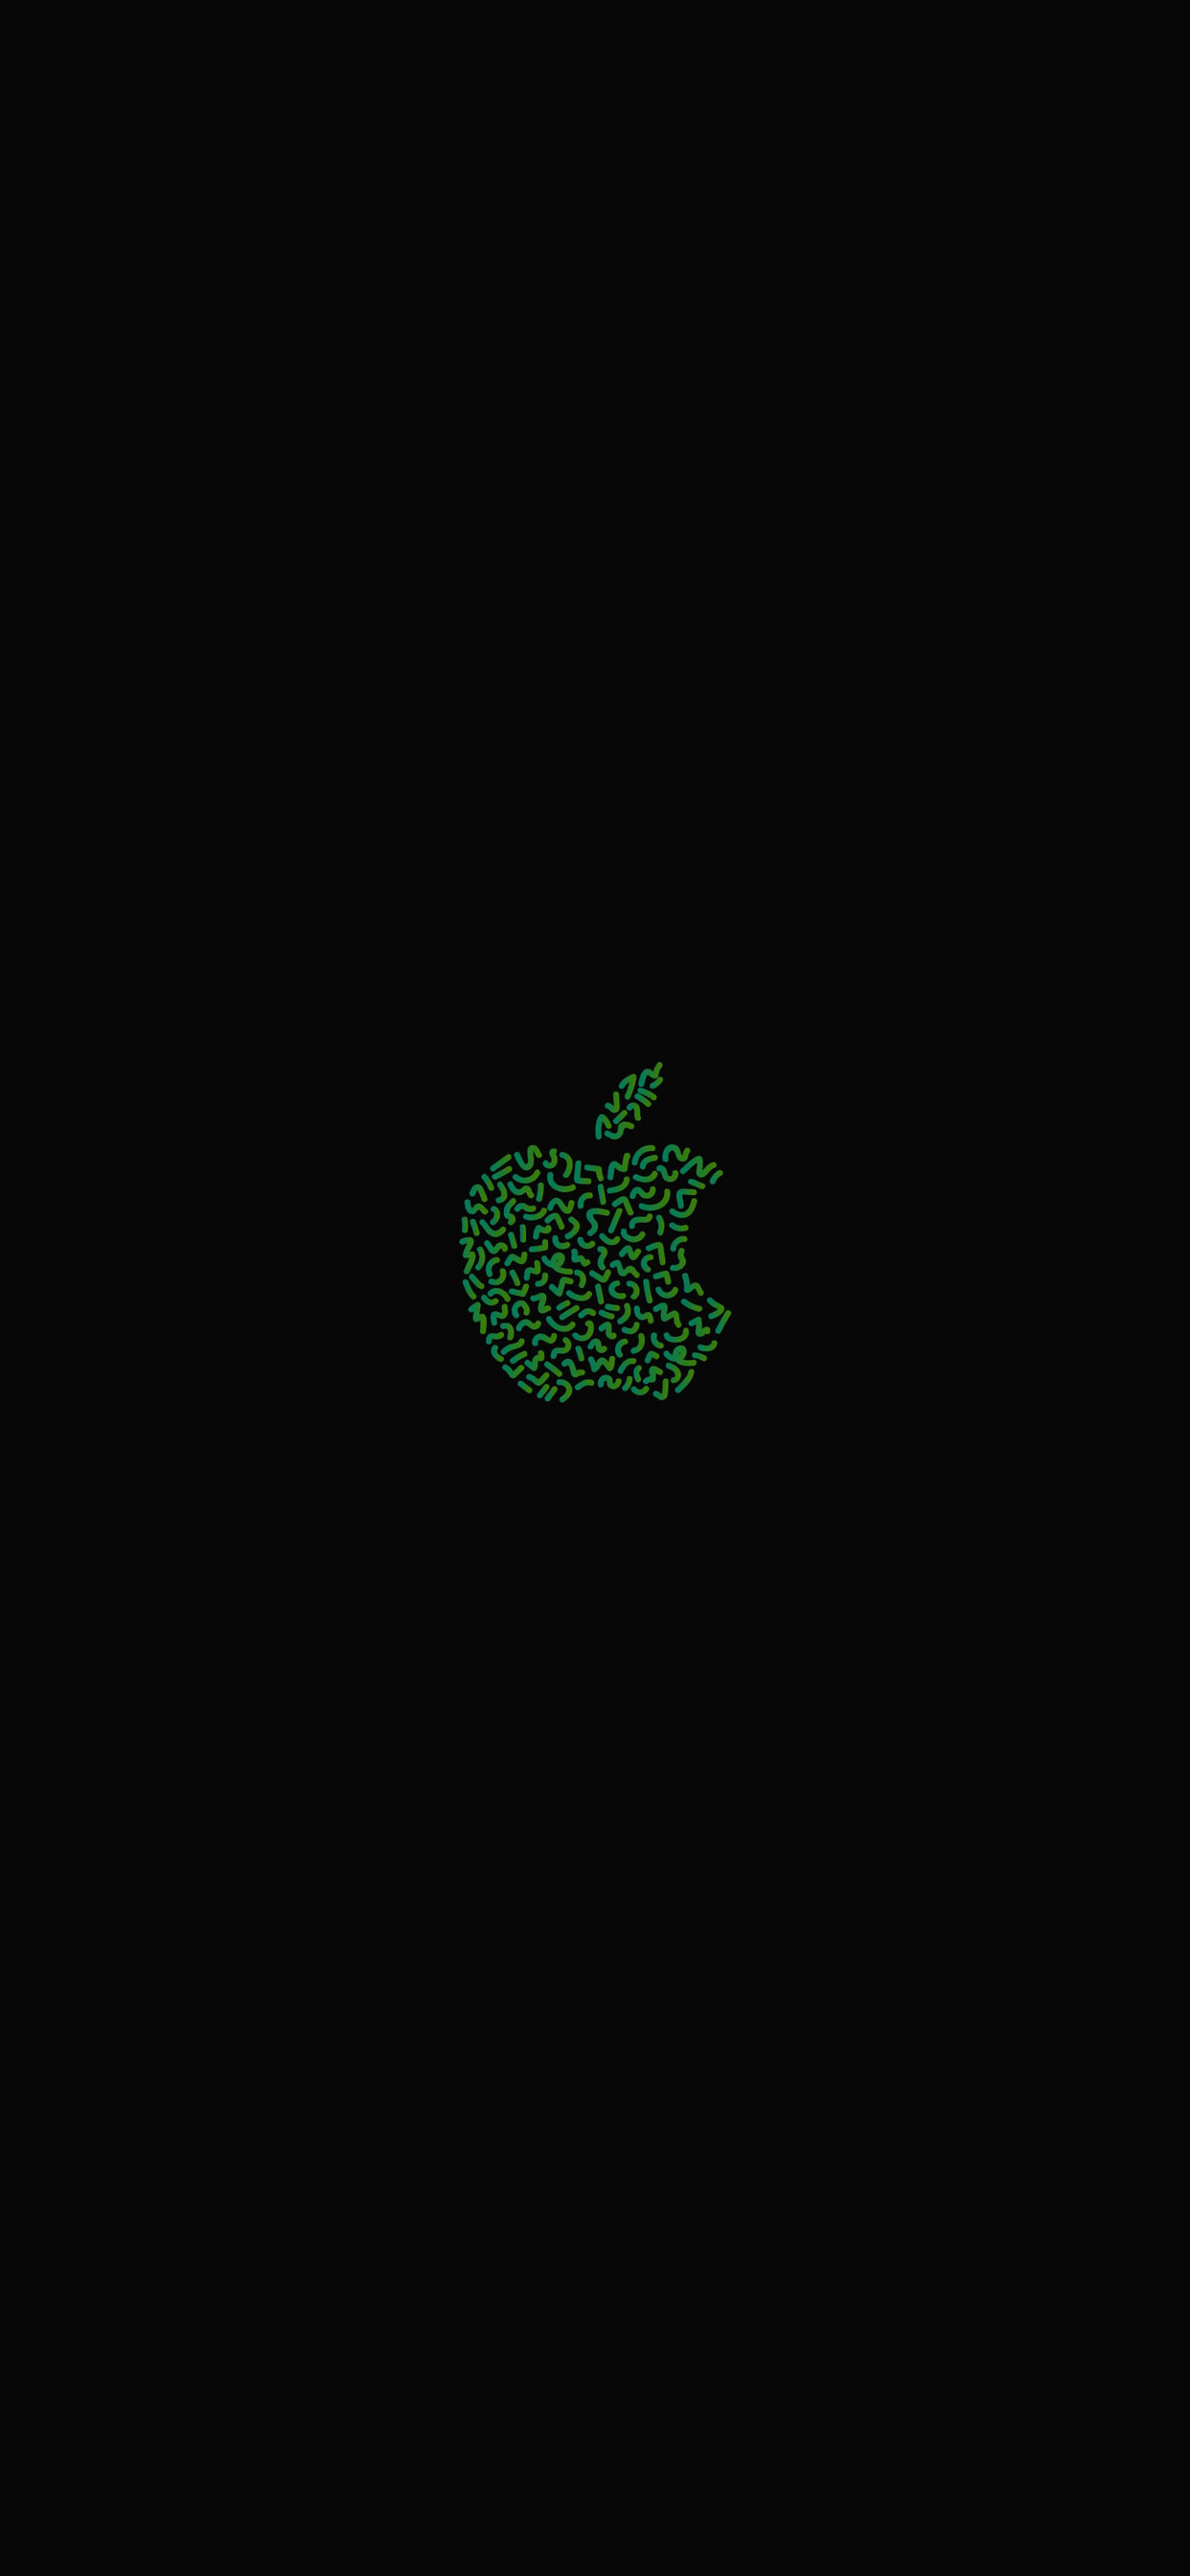 iPhone wallpaper apple logo 22 Apple logo